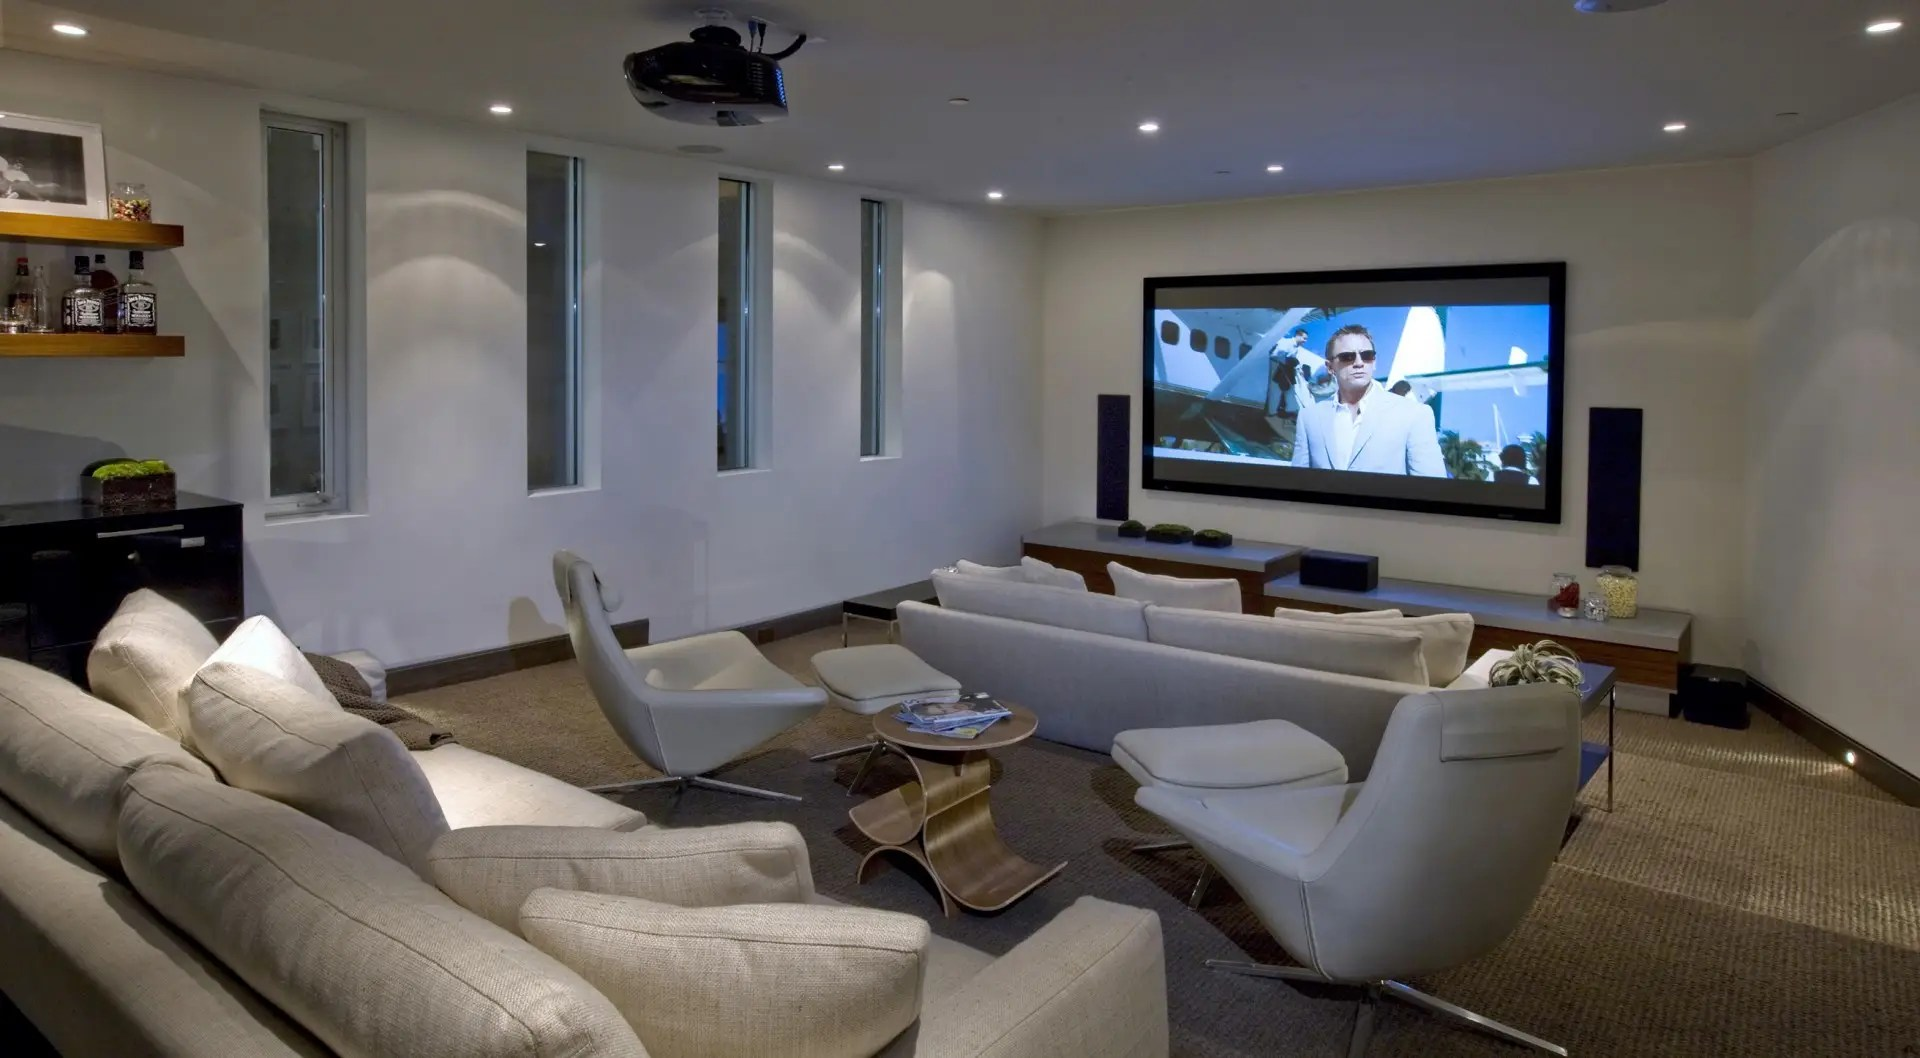 It includes a built-in home theatre.